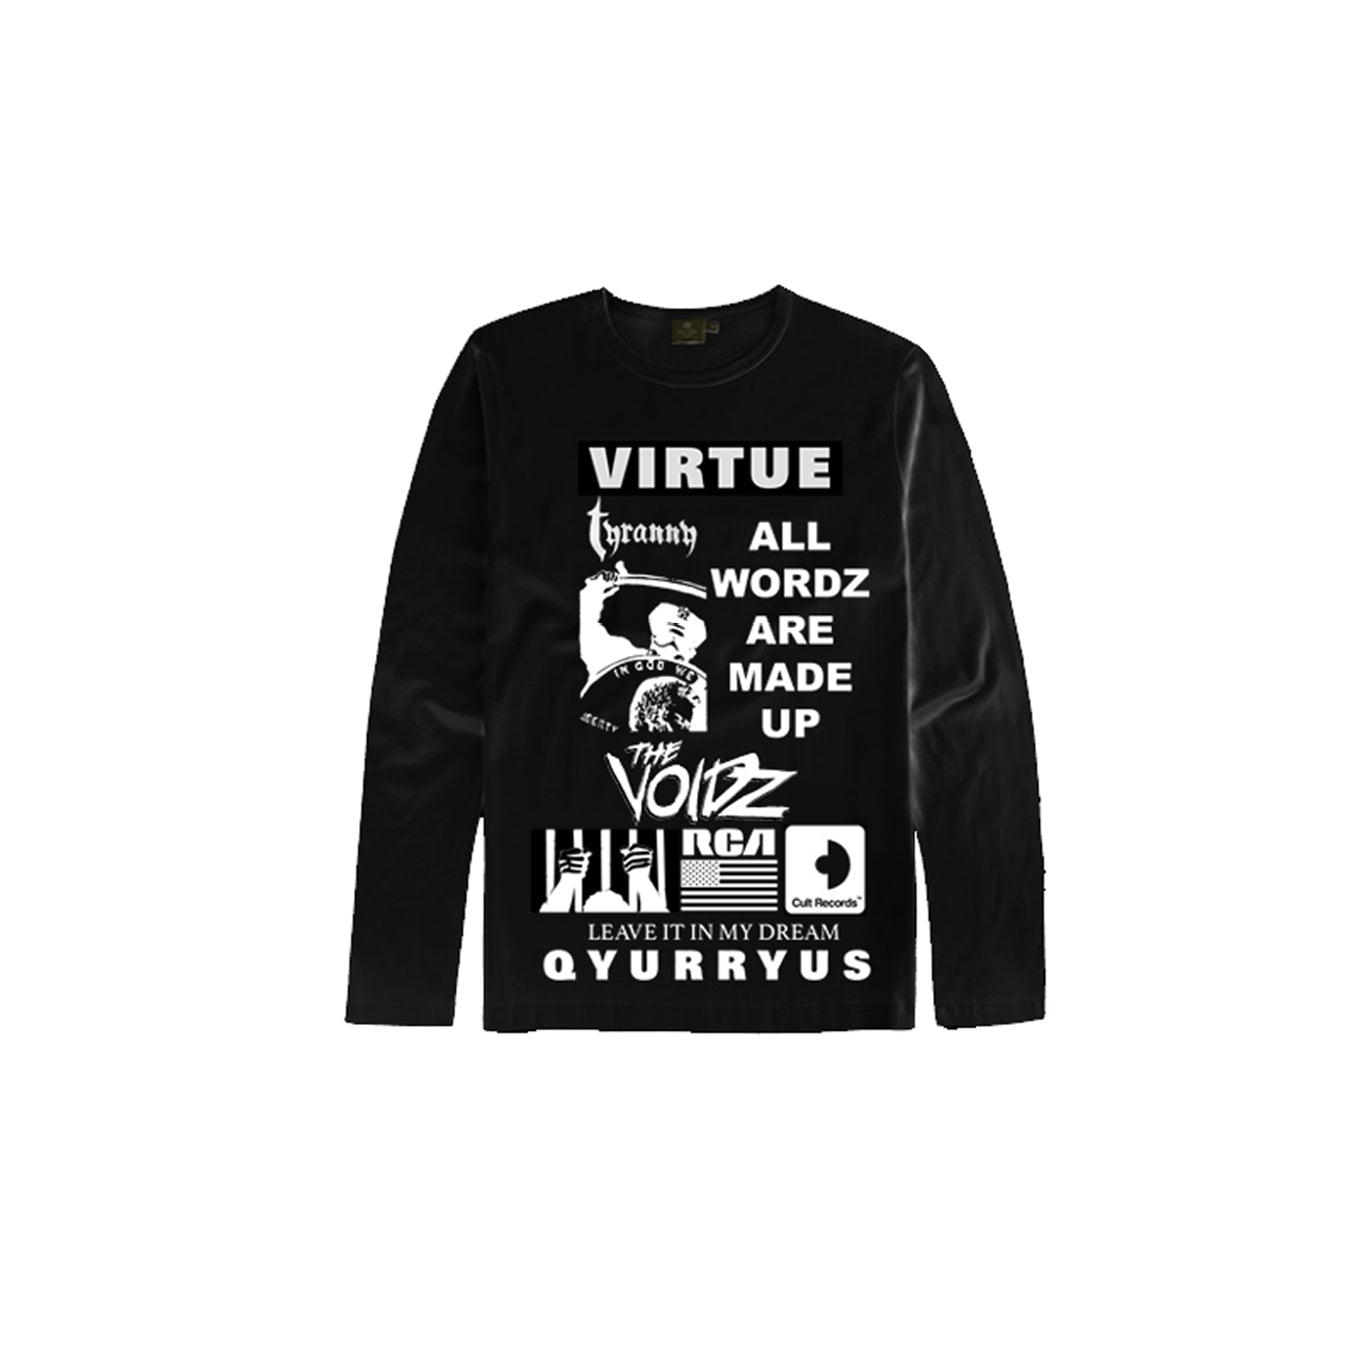 3d76bcccf Cult Records Store - The Voidz Virtue Long Sleeve